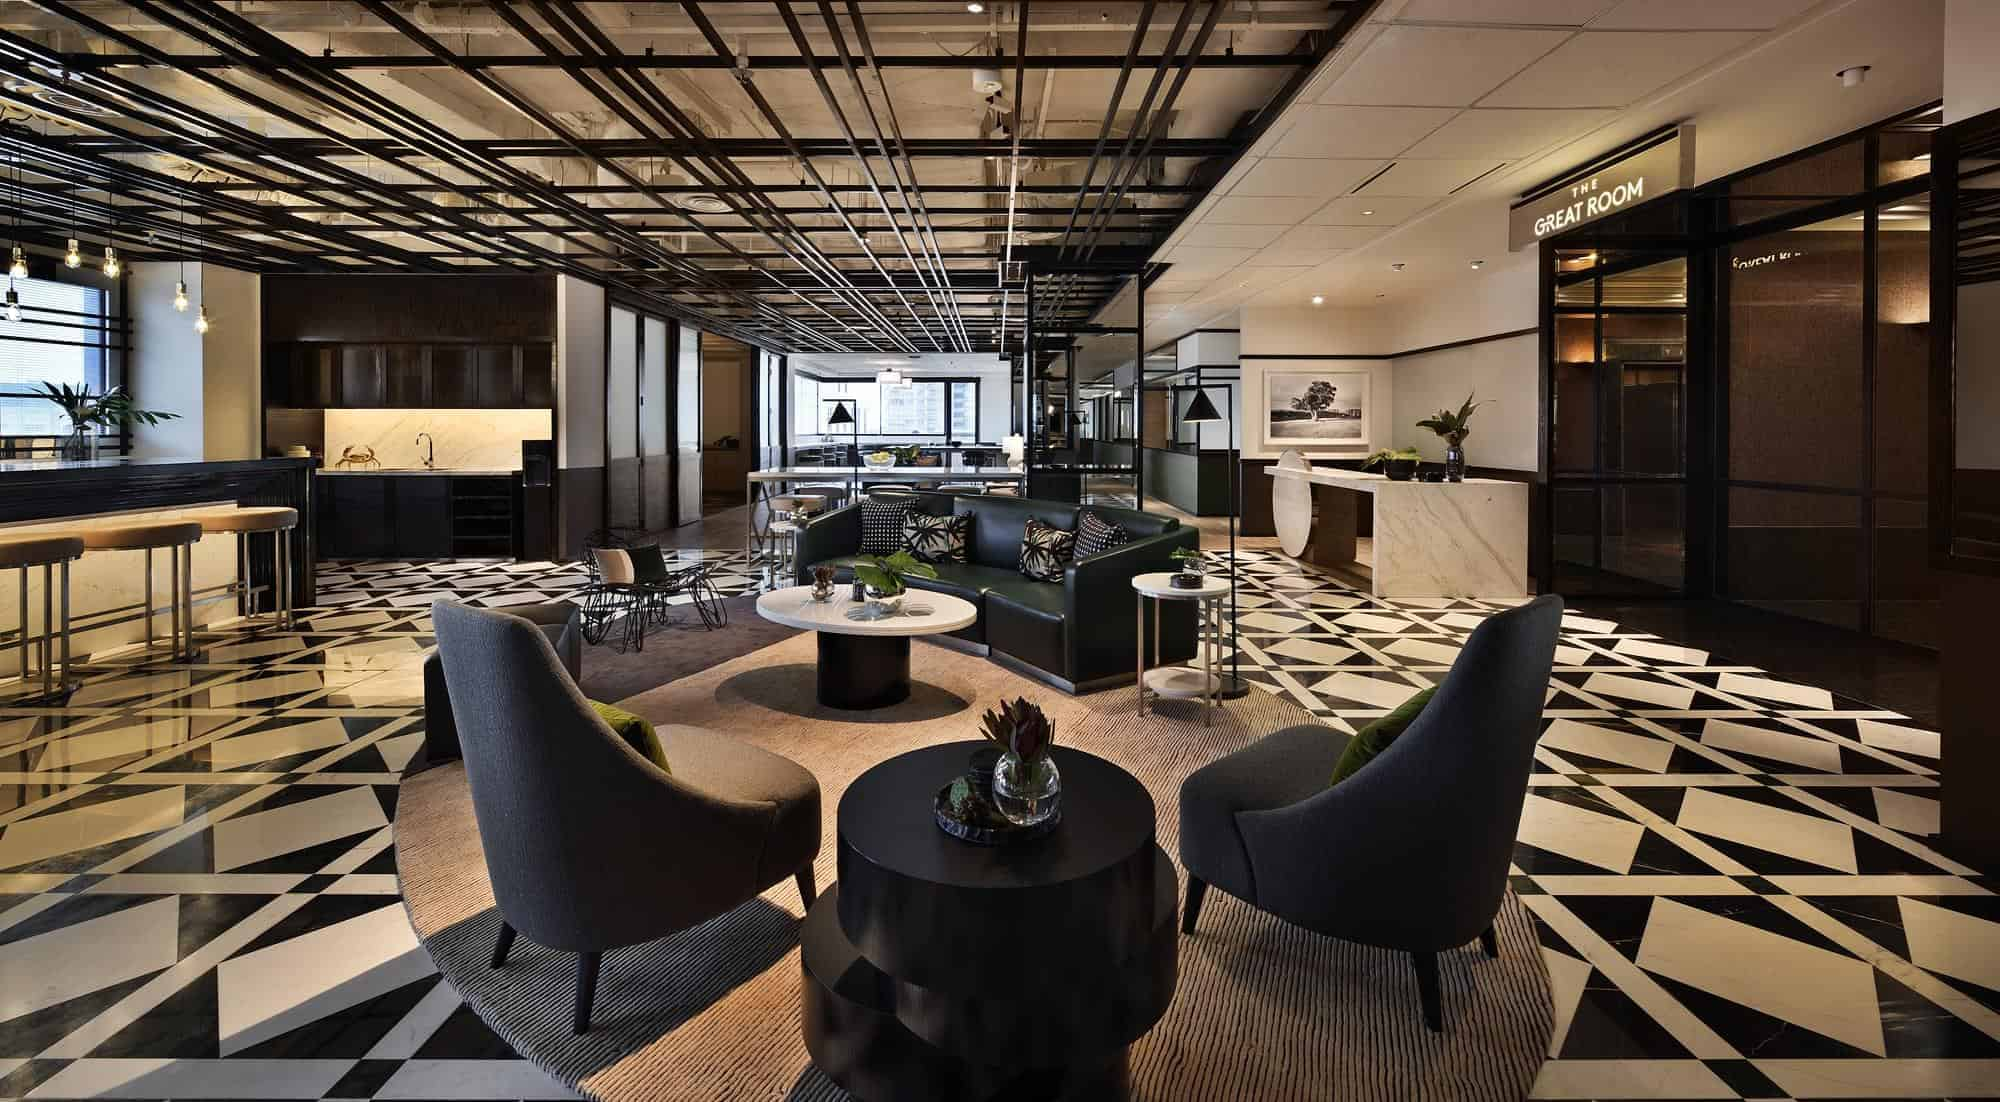 Singapore Design Guide singapore design guide Singapore Design Guide Coworking Spaces Singapore The Great Room Drawing Room Ngee Ann City min